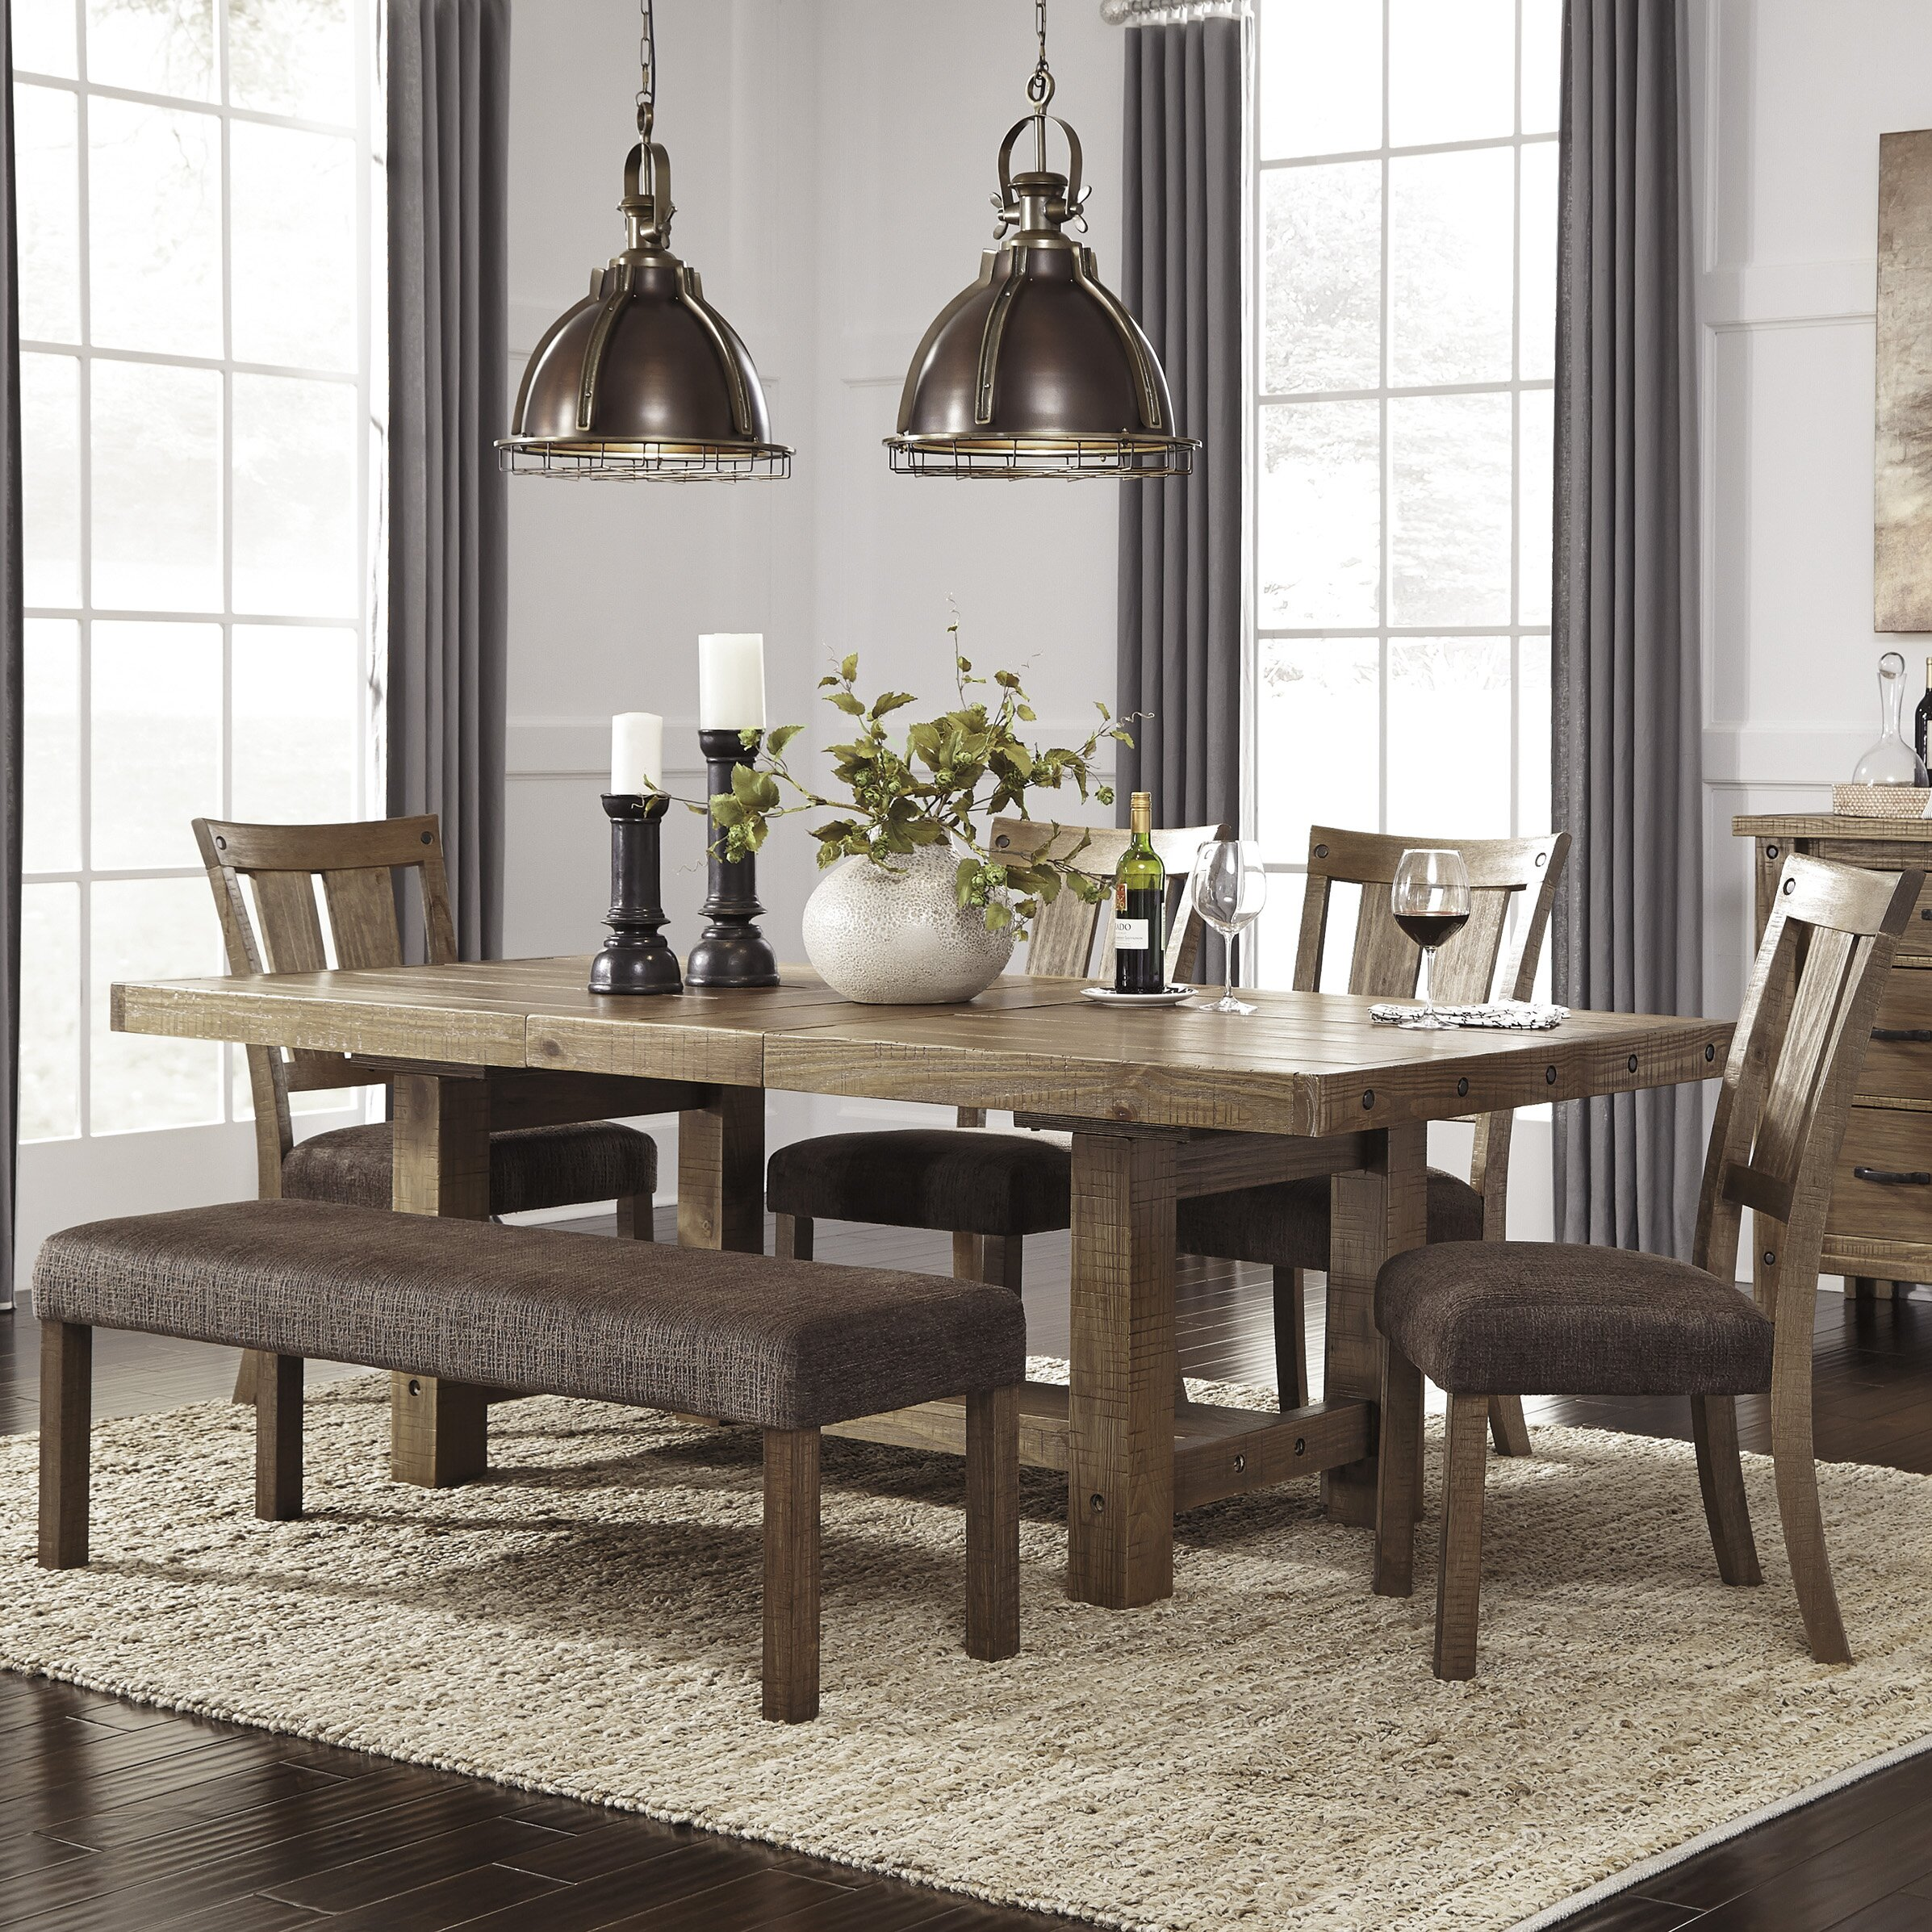 Signature design by ashley 9 piece dining set reviews for Photos of dining room sets